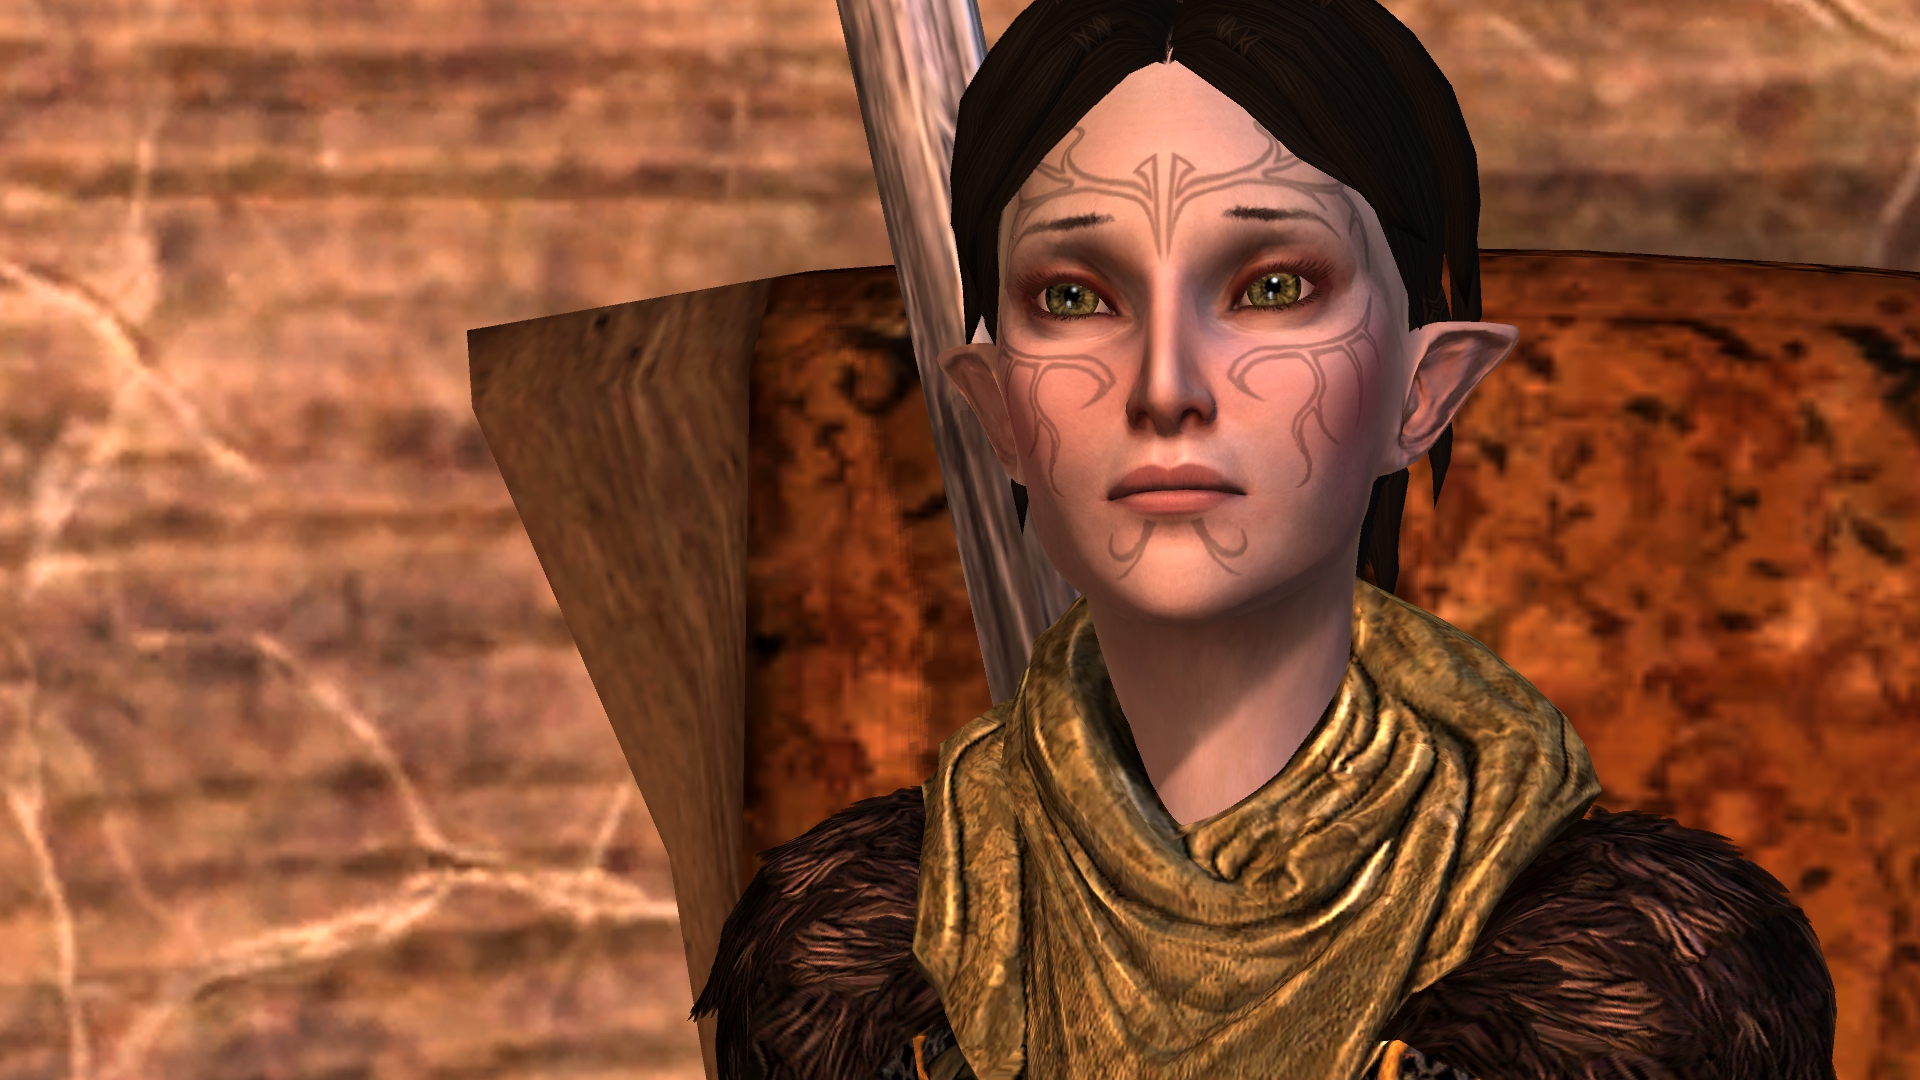 Dragon age 2 sexy meril naked erotic pictures